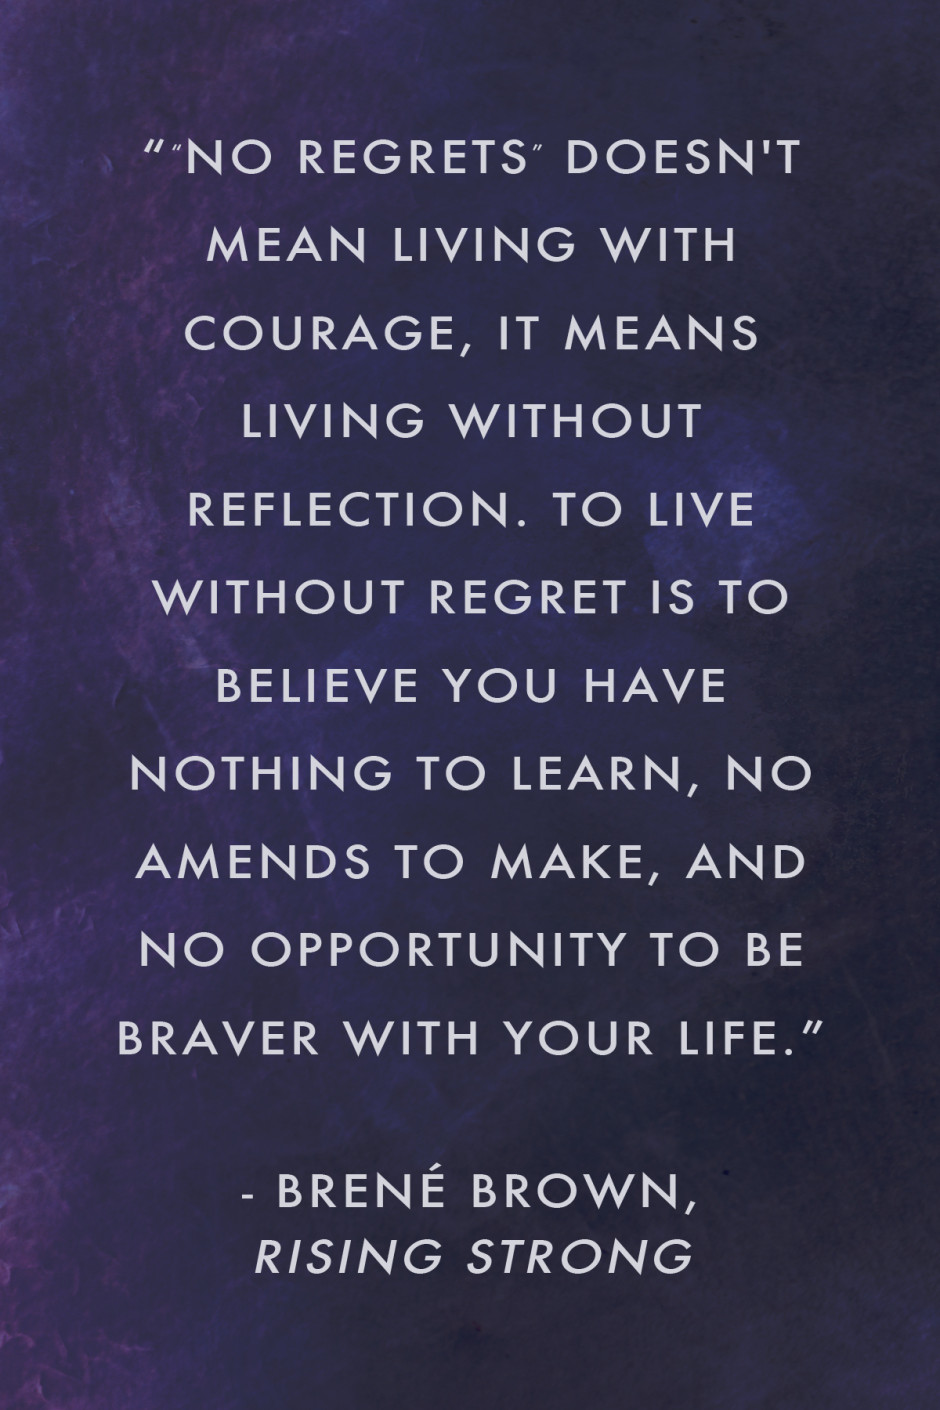 """ No regrets"" doesn't mean living with courage, it means living without reflection. To live without regret is to believe you have nothing to learn, no amends to make, and no opportunity to be braver with your life."" Brené Brown, Rising Strong"